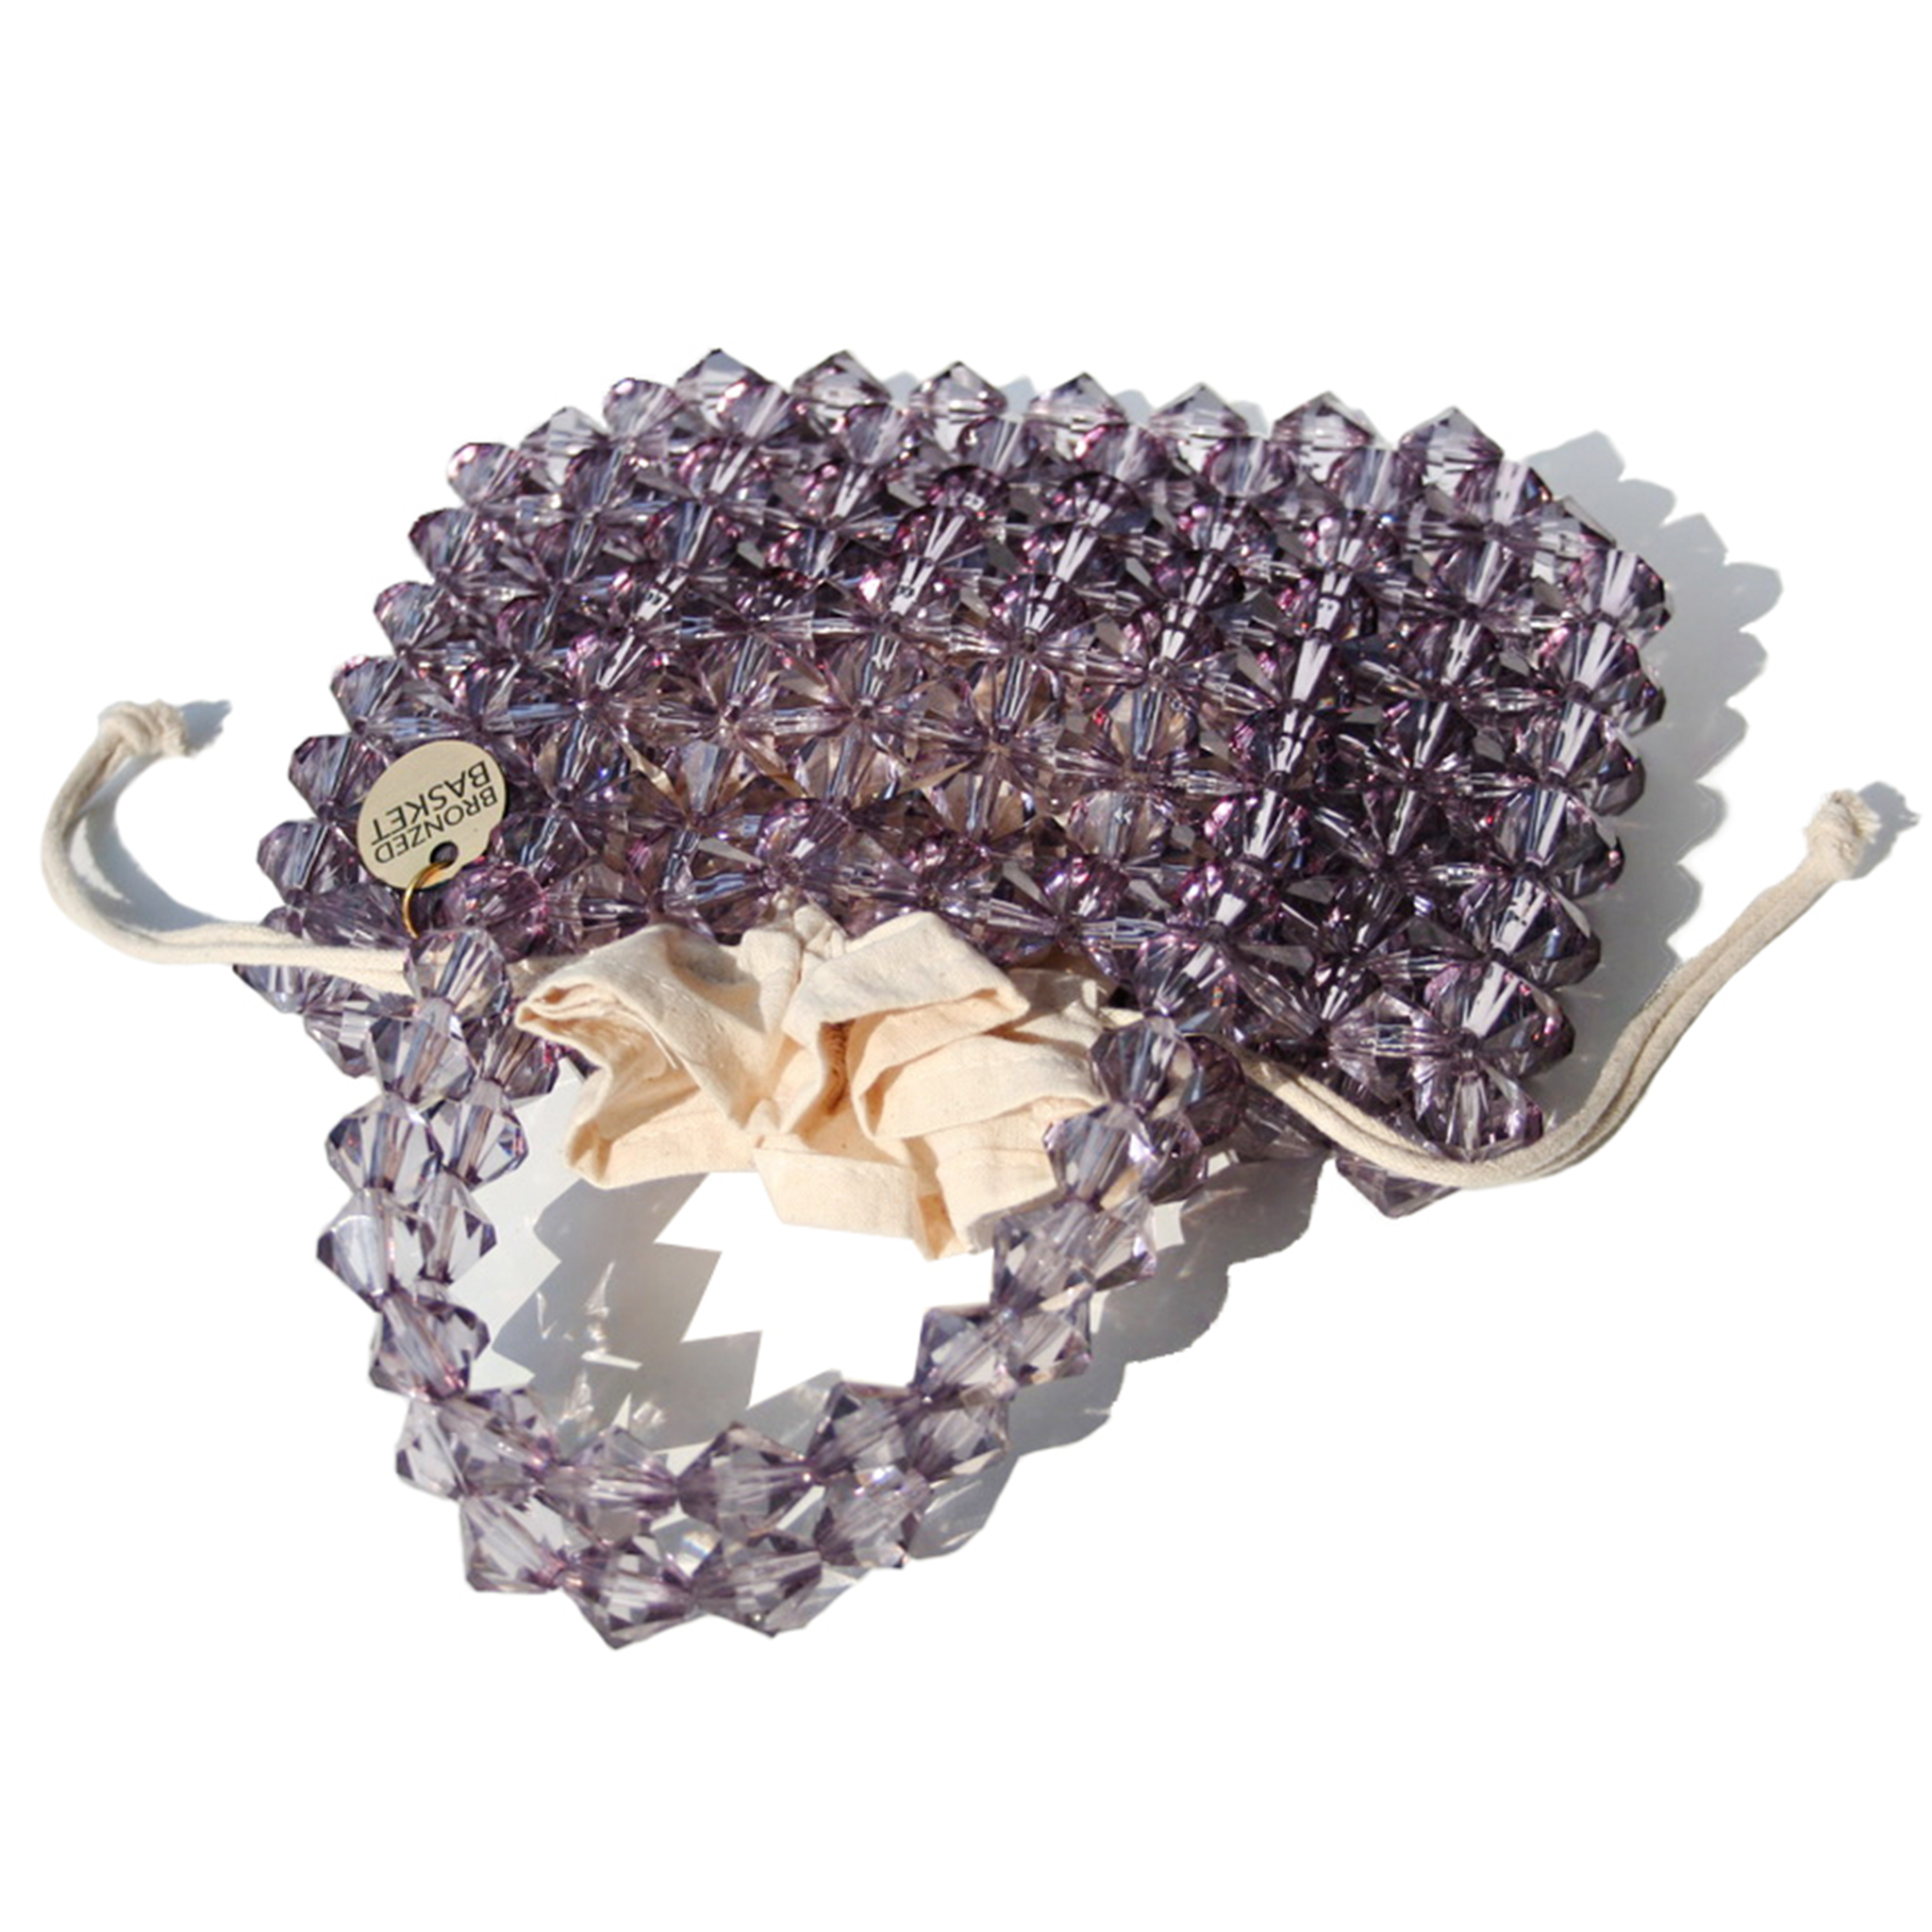 Smokey Quartz Beaded Bag